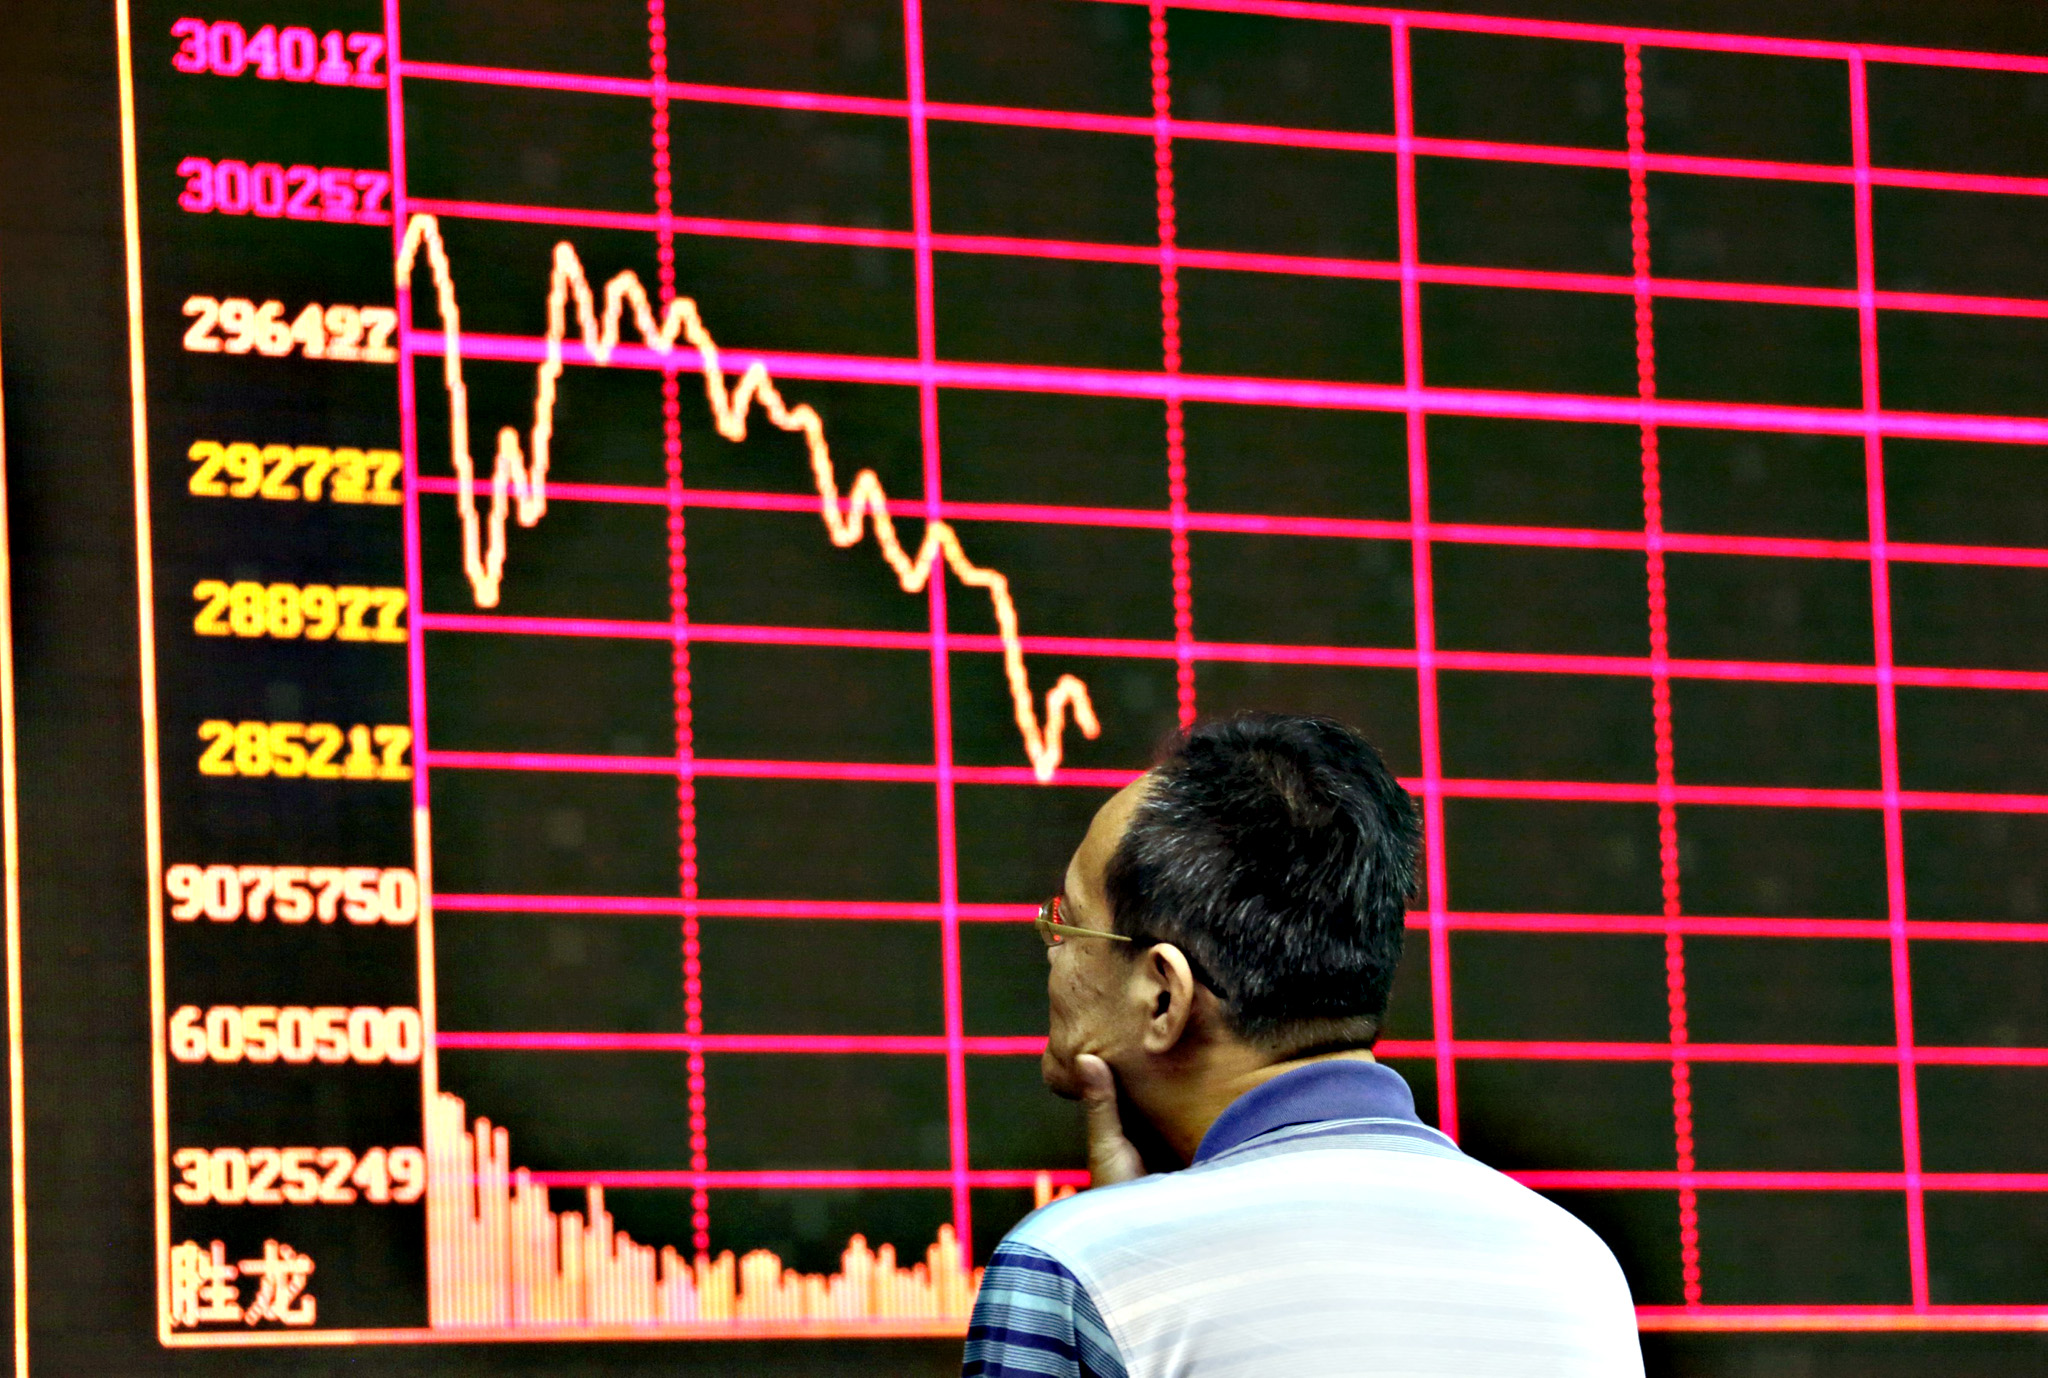 An investor looks at an electronic board showing stock information of Shanghai Stock Exchange Composite Index at a brokerage house in Beijing, August 26, 2015. Asian shares struggled on Wednesday as investors feared fresh rate cuts in China would not be enough to stabilise its slowing economy or halt a stock collapse that is wreaking havoc in global markets